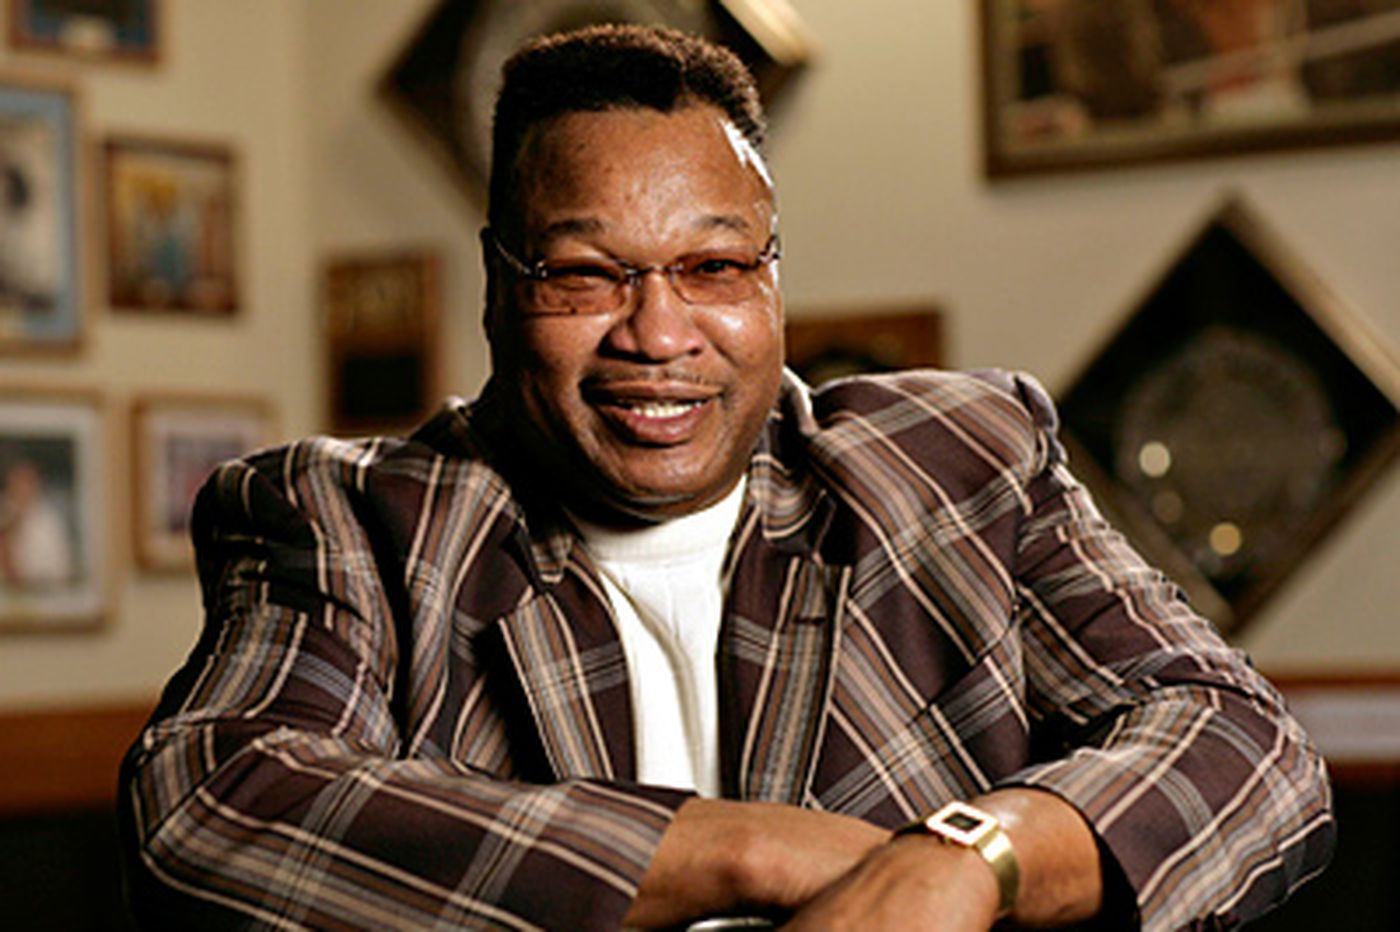 Larry Holmes returns to the ring - sort of